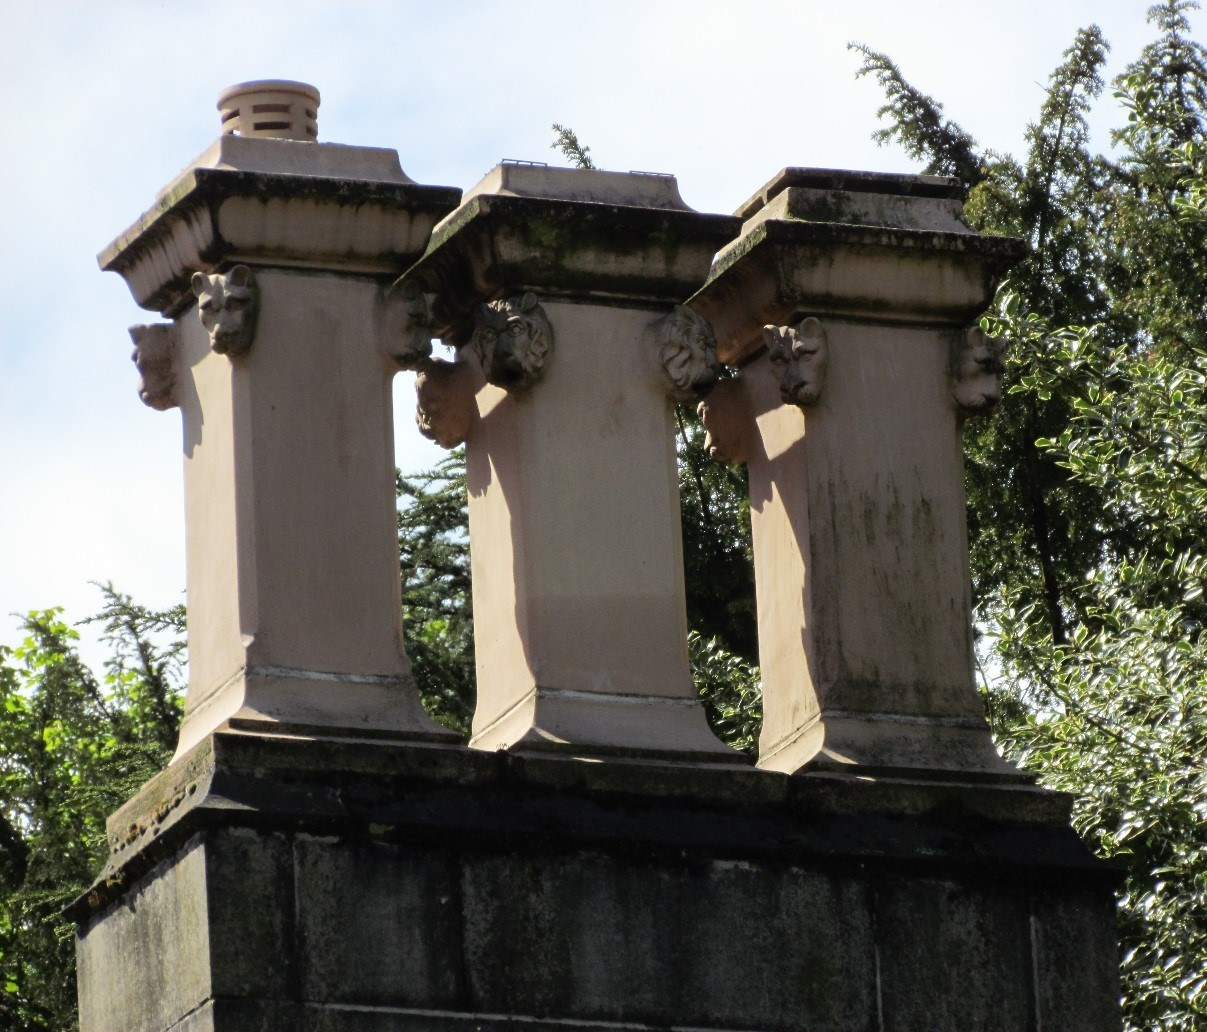 Square chimney pots with lion's heads on Wilshaw Villa, Wilshaw near Huddersfield, c. 1850